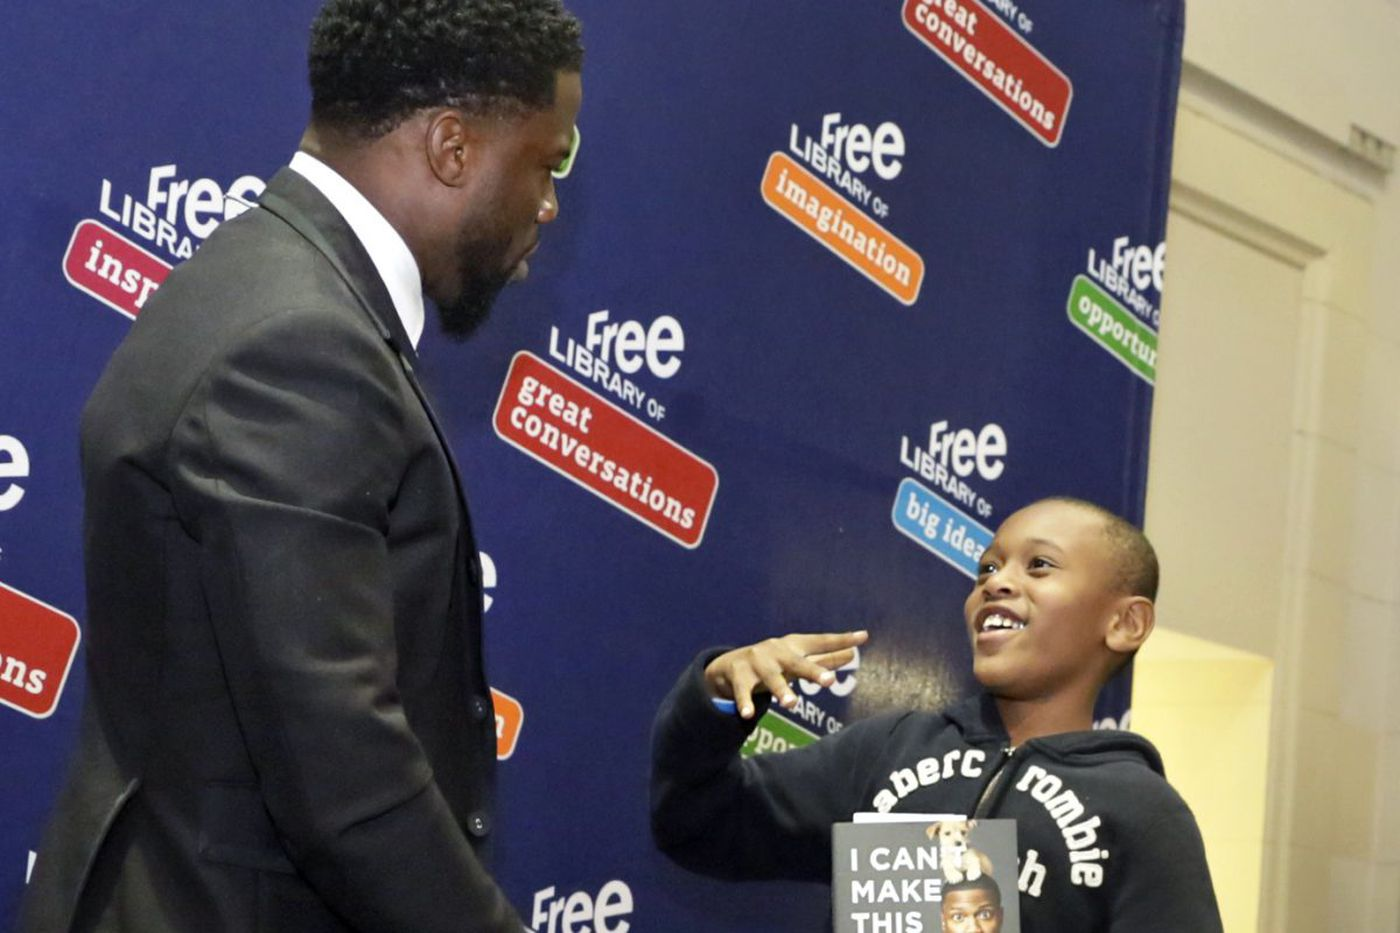 Promoting books Kevin Hart style: The Philly-born superstar posed for pics with fans at the Free Library